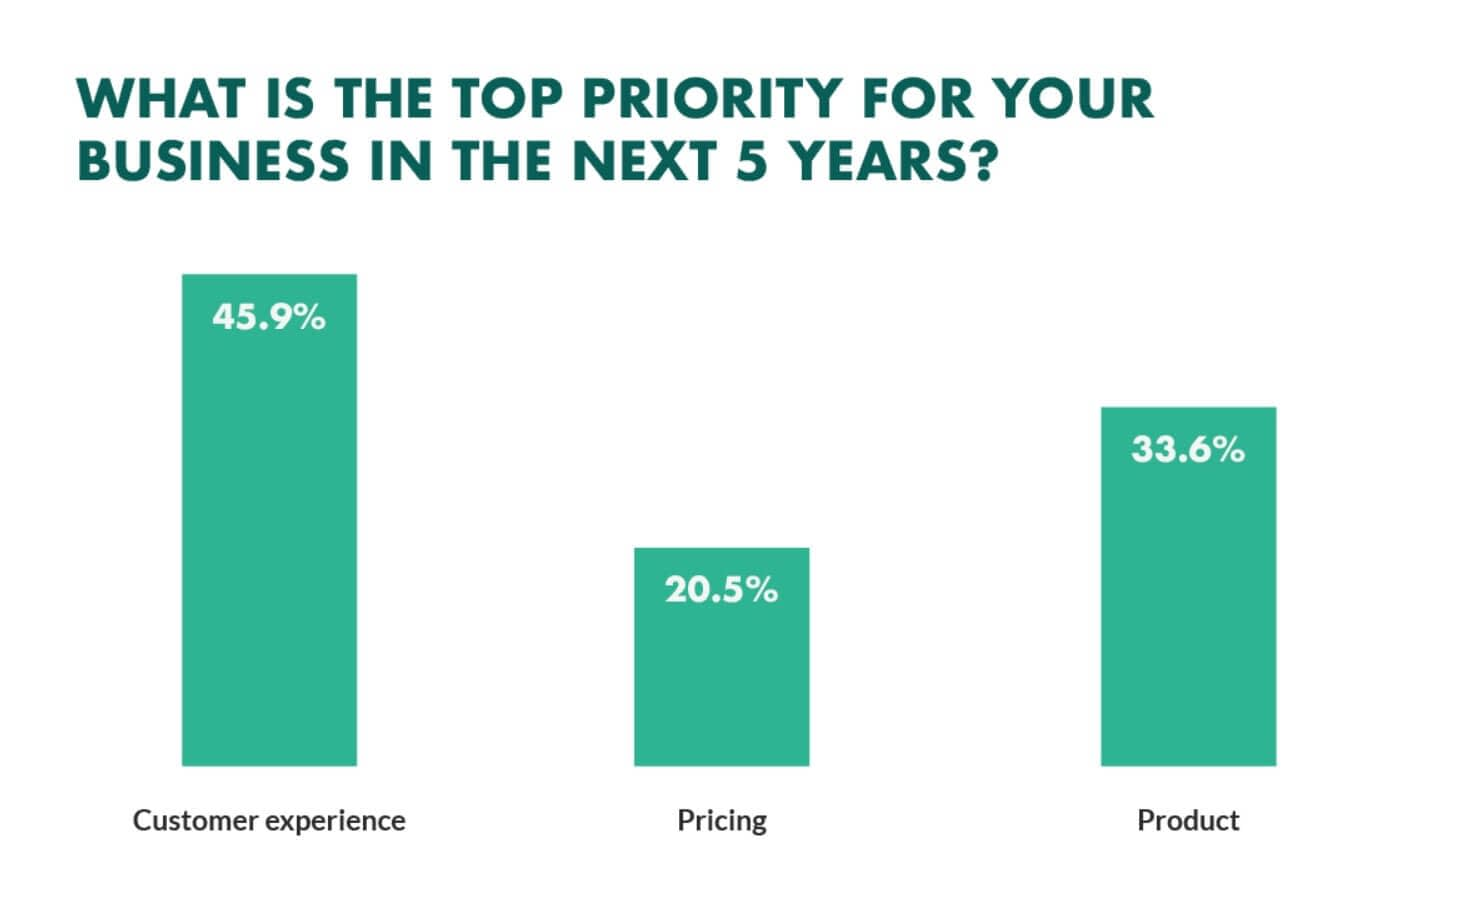 Customer experience has become the top priority for businesses in 2021 and total experience does influence customer experience. Total experience is within b2b content marketin trends in 2021.